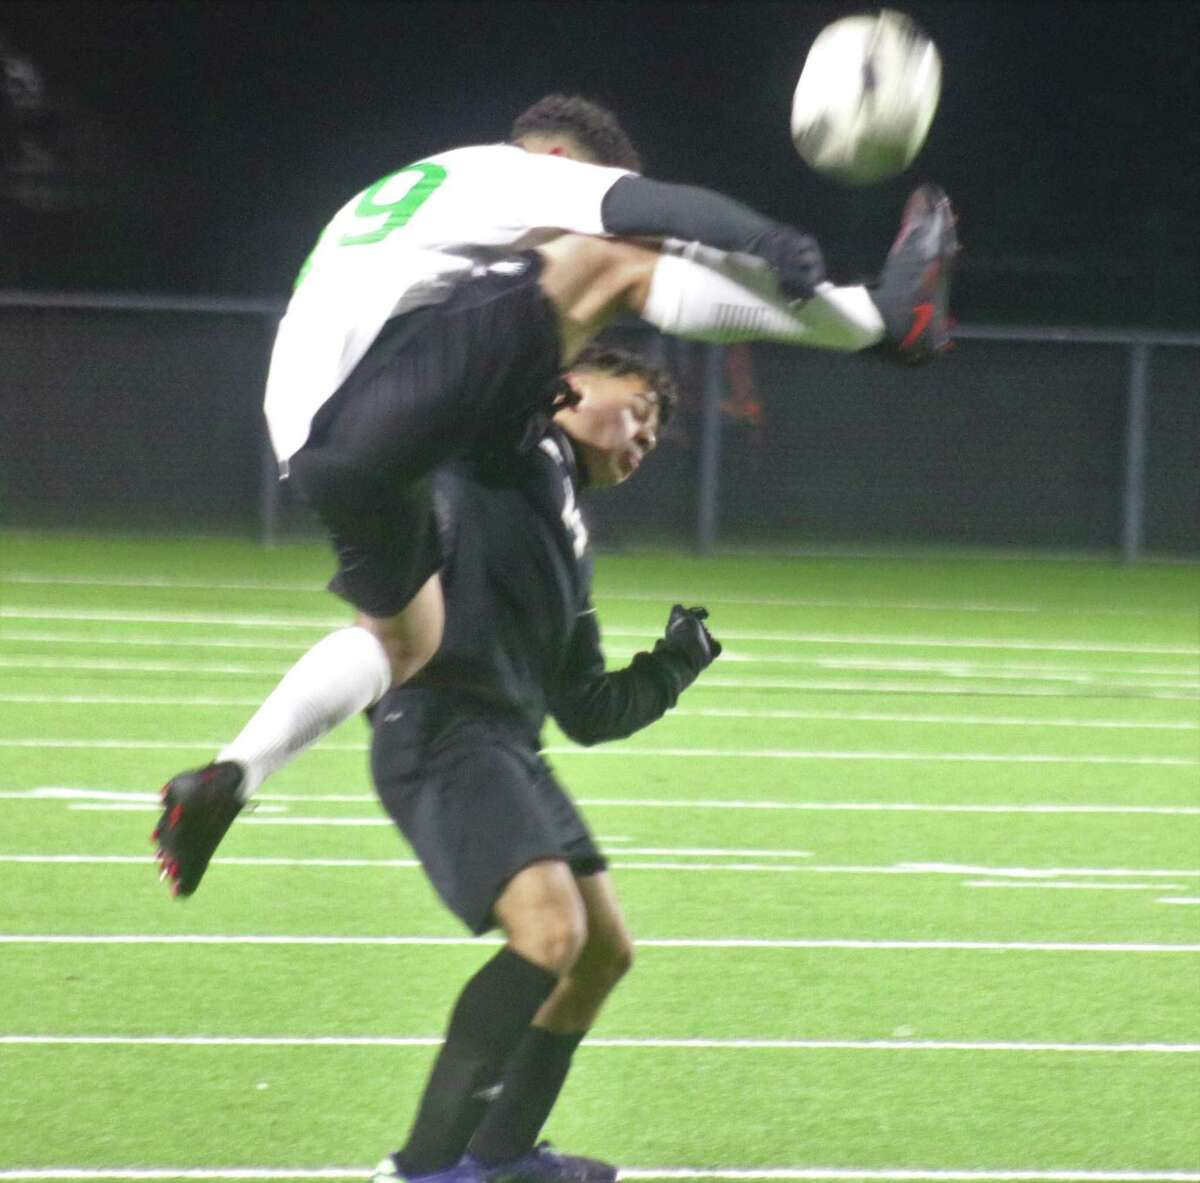 An Eagles player takes to the air in order to kick the ball away from a Memorial player during first-half action at frigid Veterans Memorial Stadium Friday night.